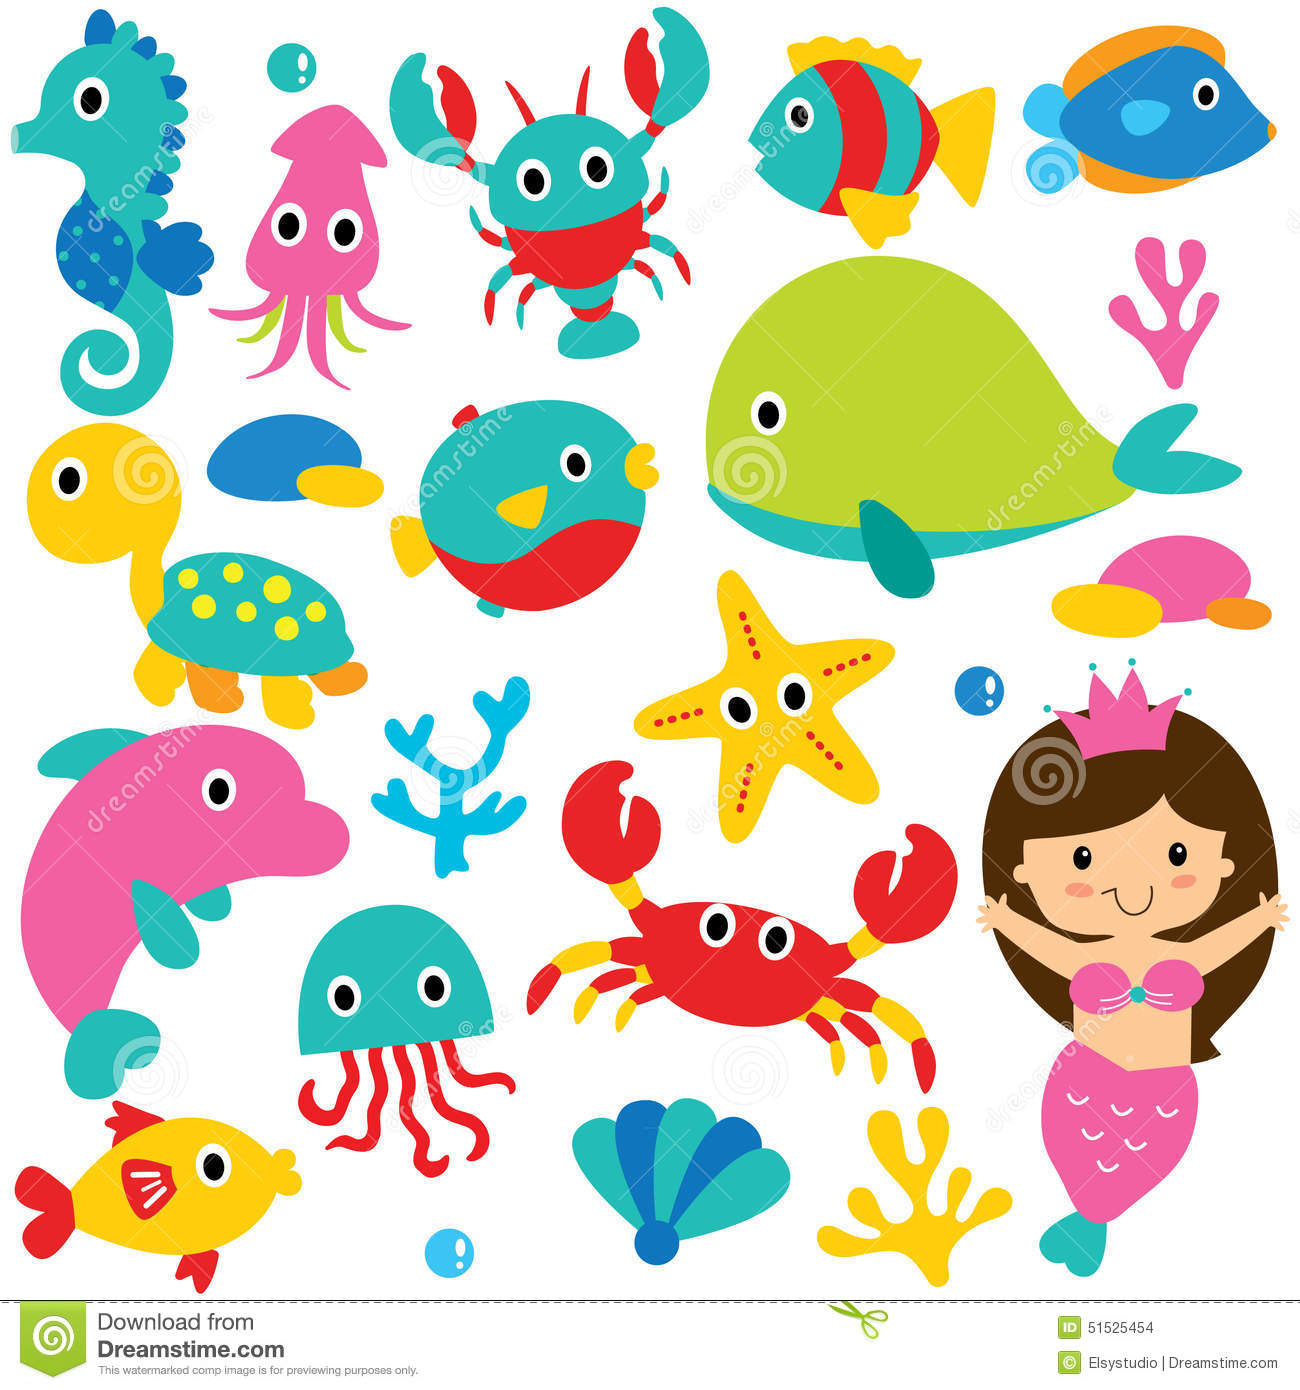 Creature clipart #8, Download drawings